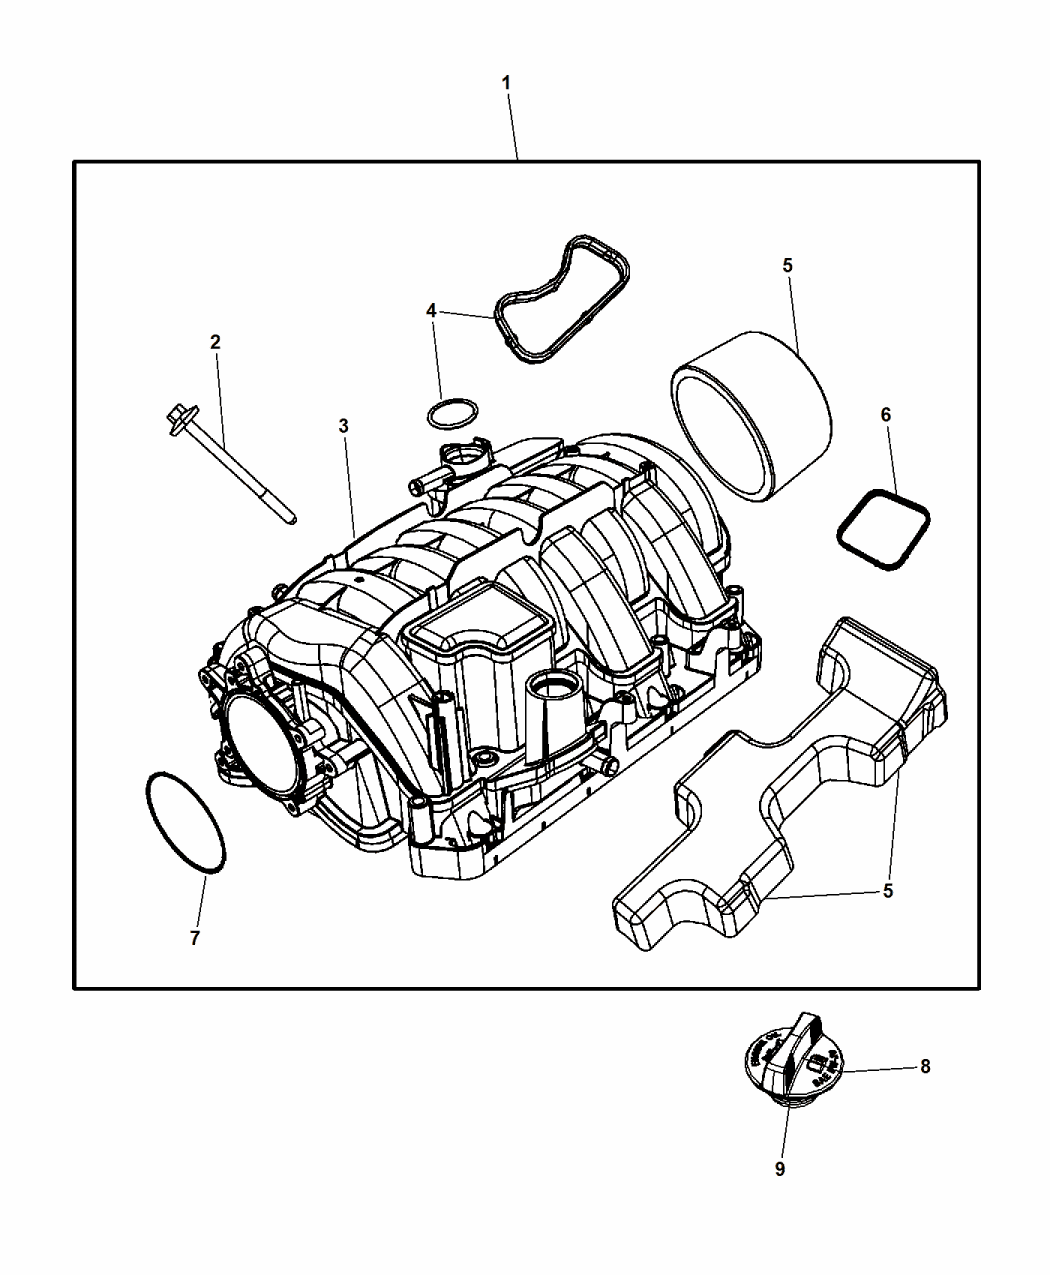 Dodge Challenger Drawing At Free For Personal Use Ram Fog Light Wiring Diagram 1050x1275 Intake Manifold 2015 Mopar Parts Giant